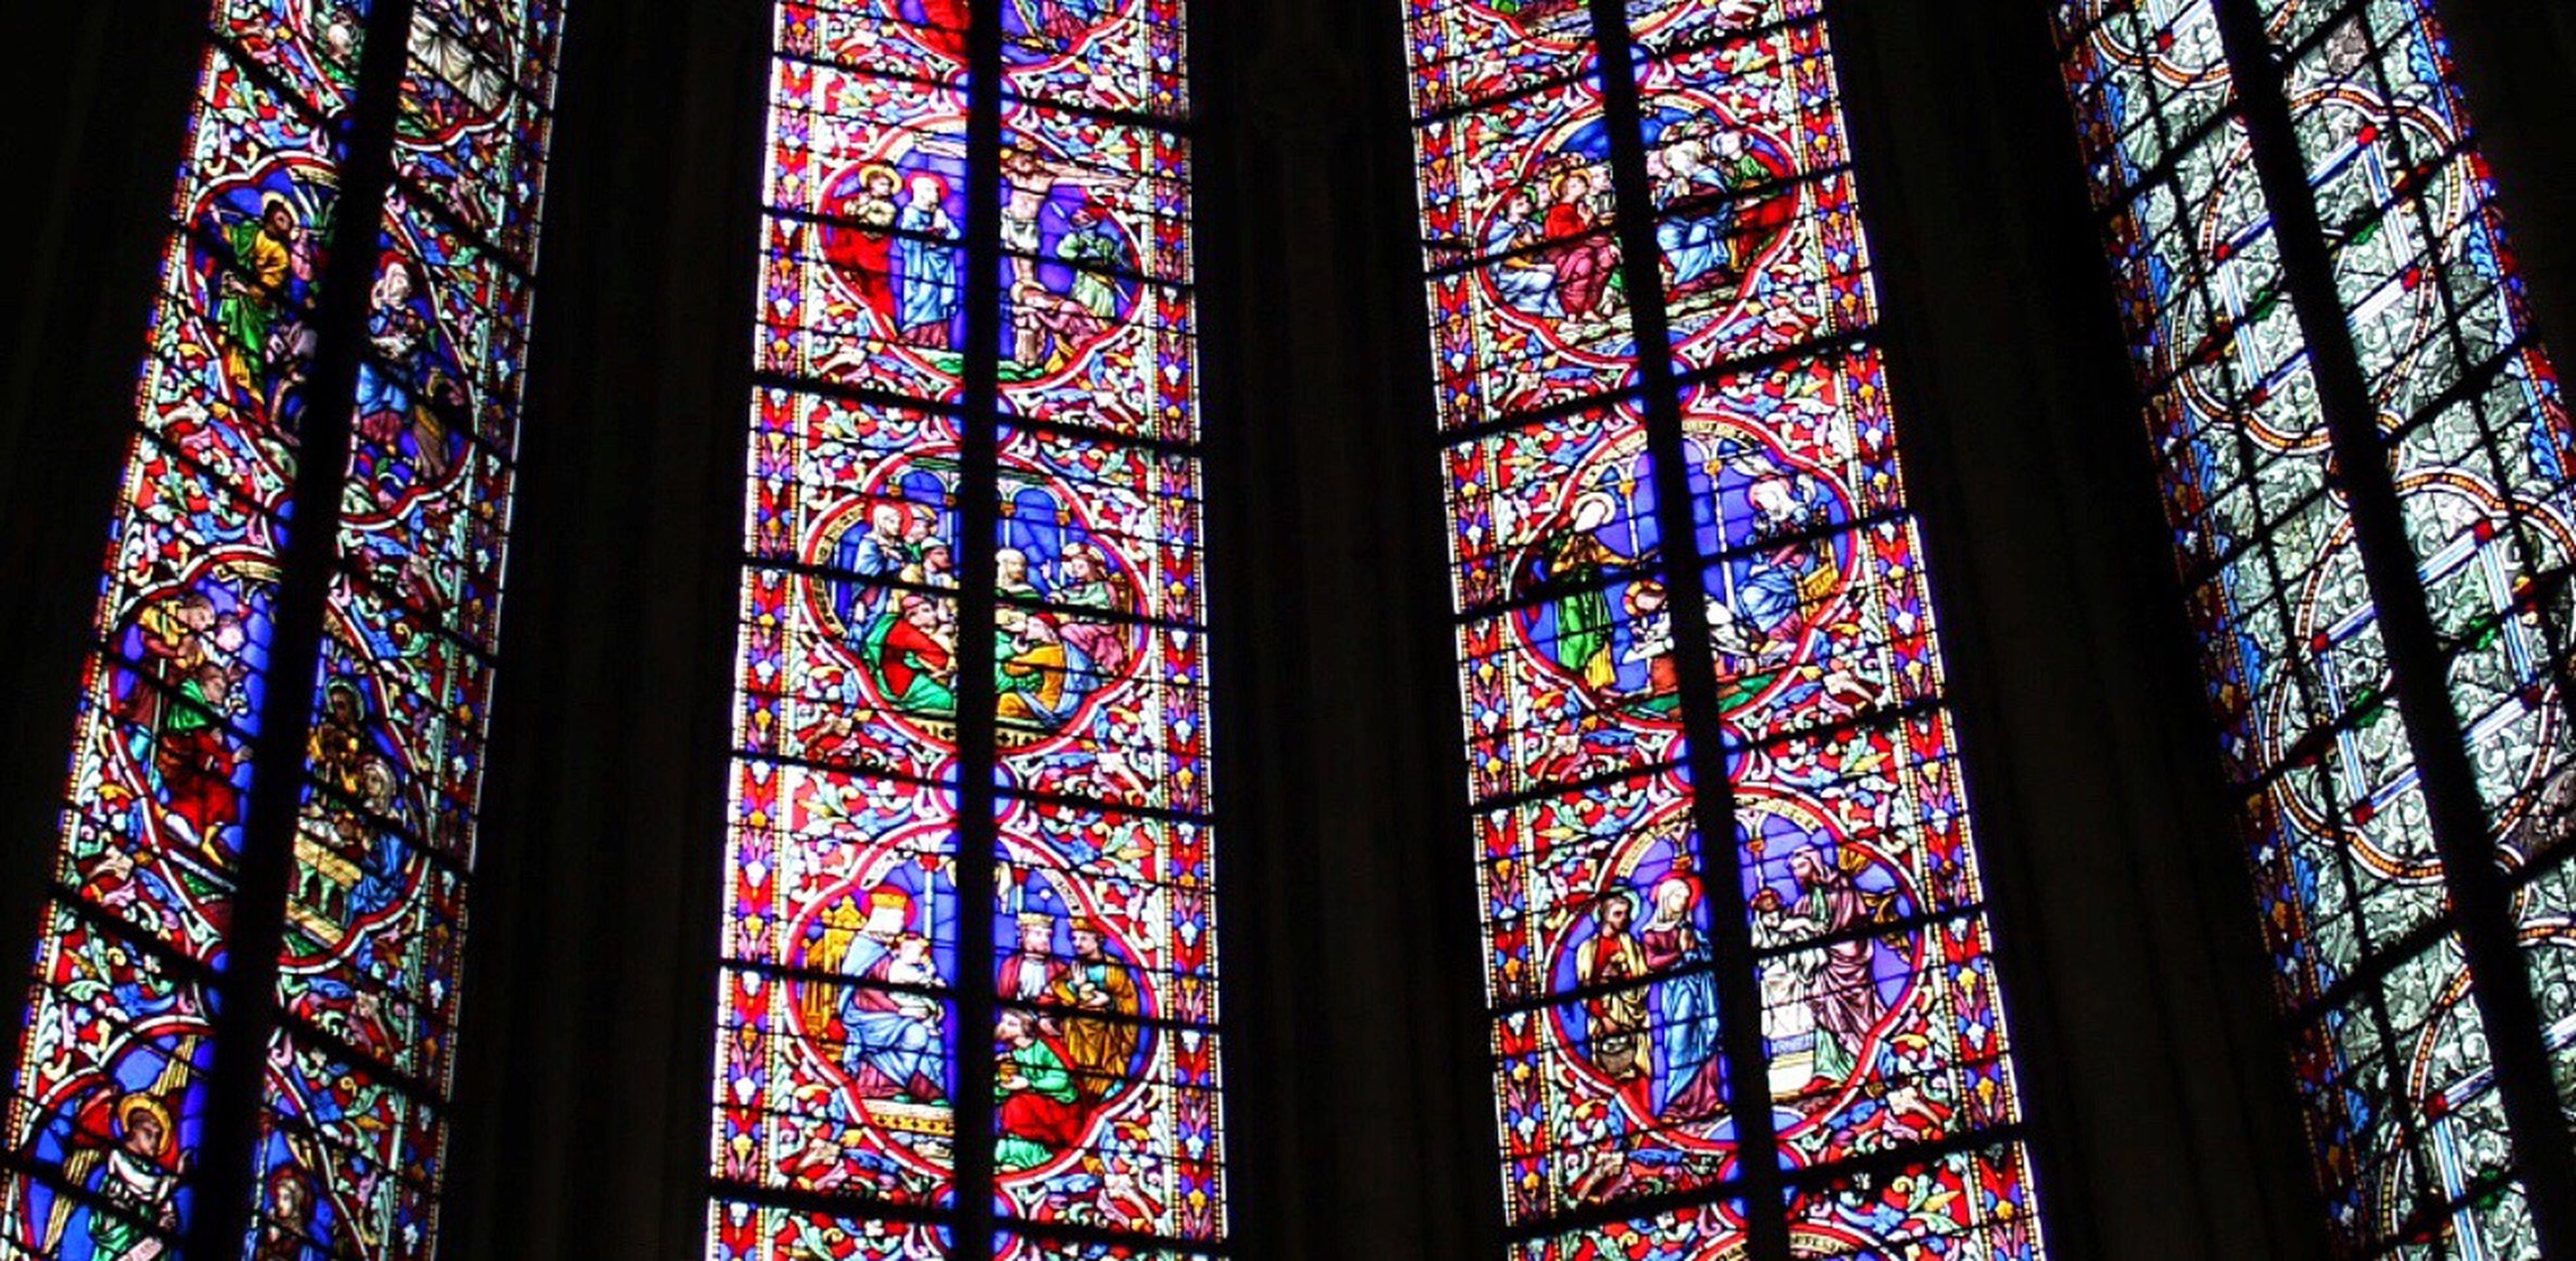 stained glass, indoors, pattern, low angle view, window, multi colored, no people, backgrounds, full frame, day, place of worship, close-up